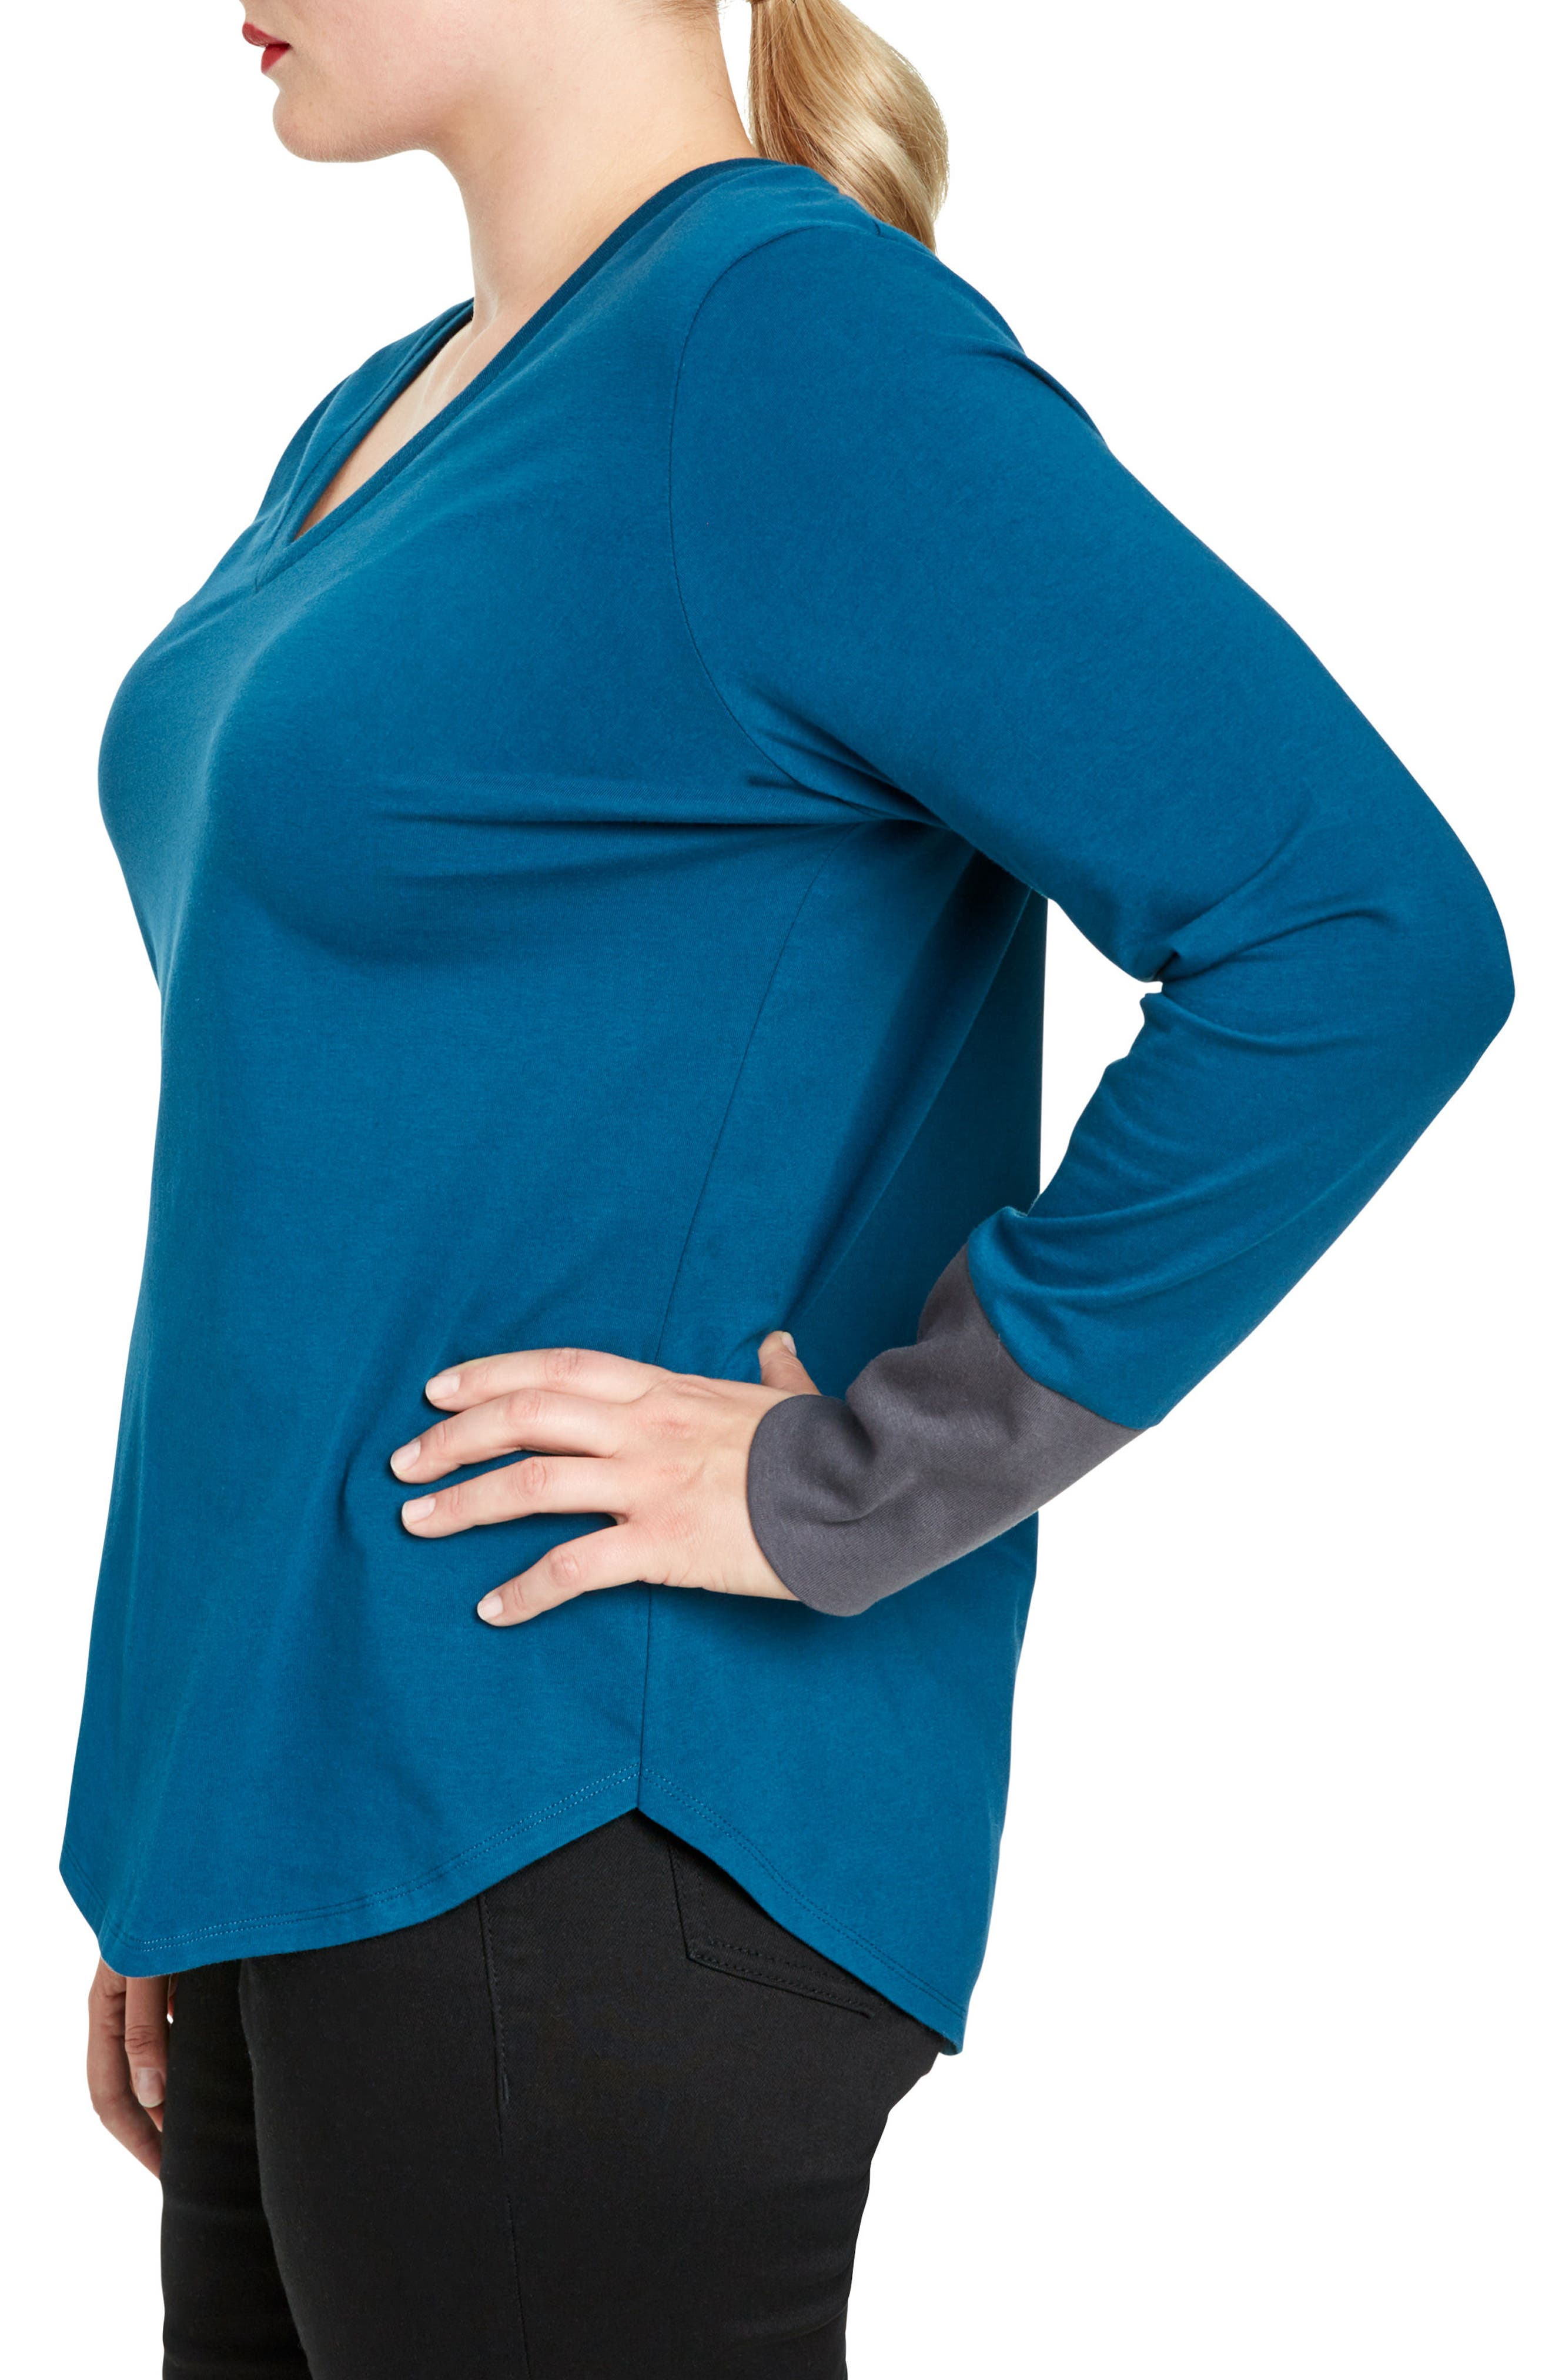 Rhine Colorblock Cuff Top,                             Alternate thumbnail 3, color,                             Marine/ Slate